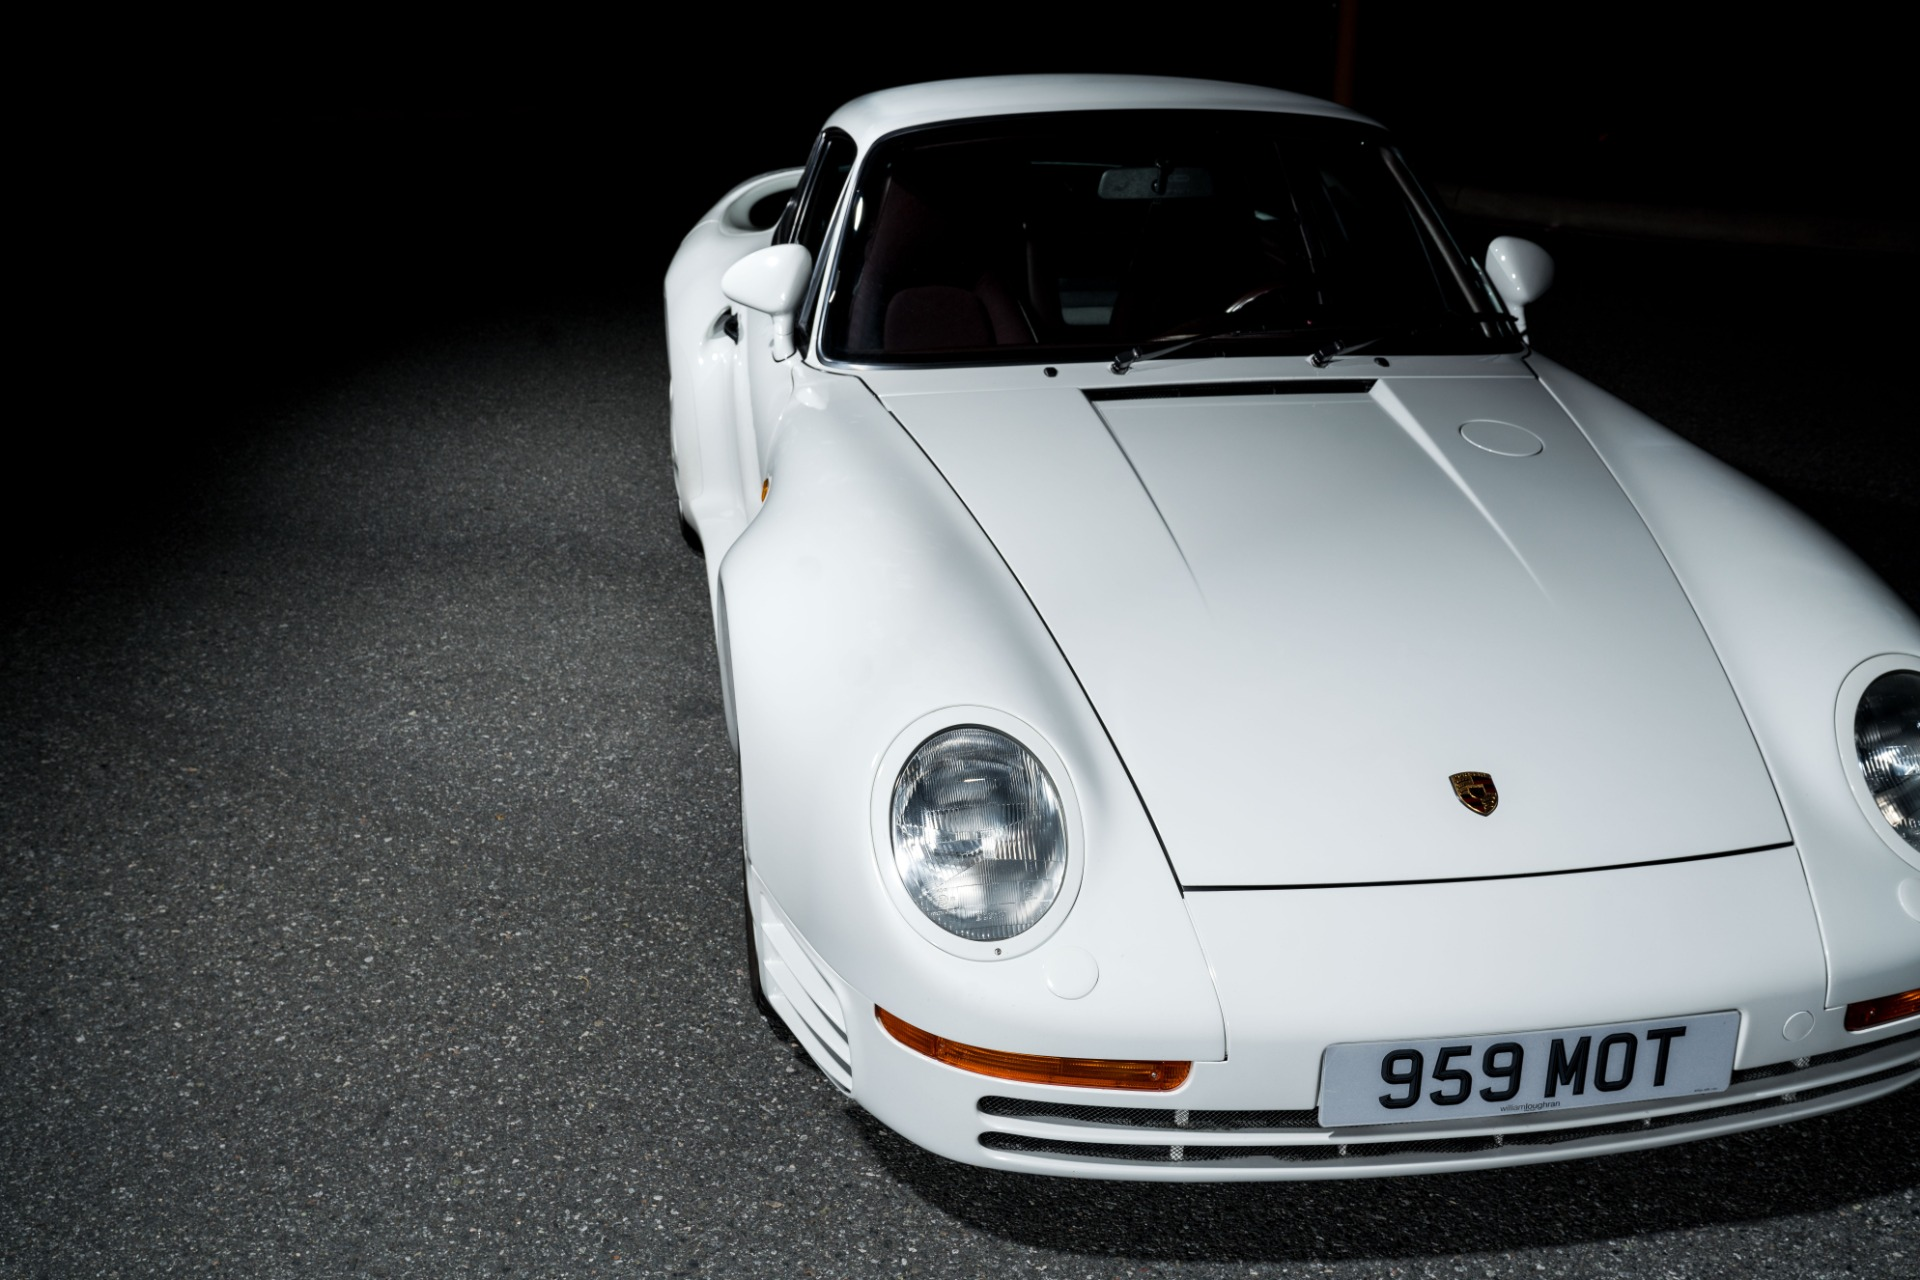 Used 1988 Porsche 959 KOMFORT COUPE / AWD / 6-SPEED MANUAL / ORIGINAL SUPERCAR for sale $1,399,999 at Formula Imports in Charlotte NC 28227 12